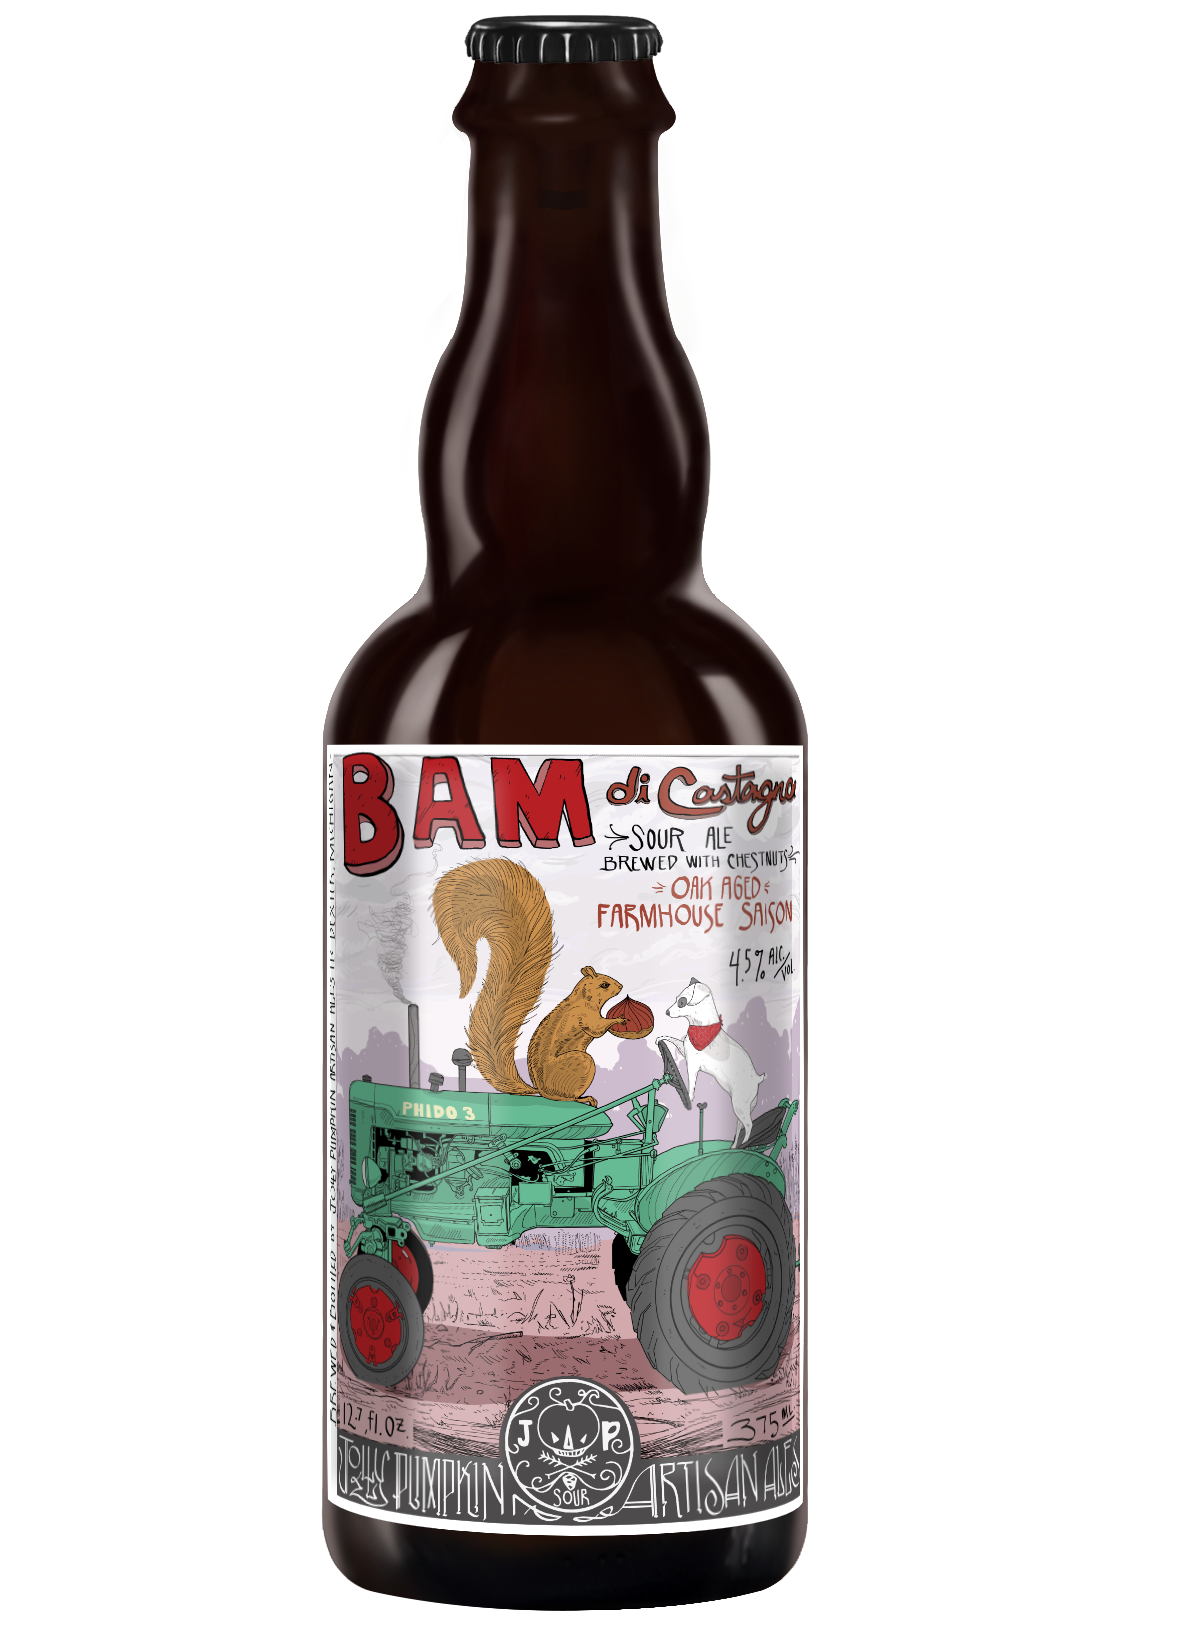 New 375 bottle - bam di castagna.png